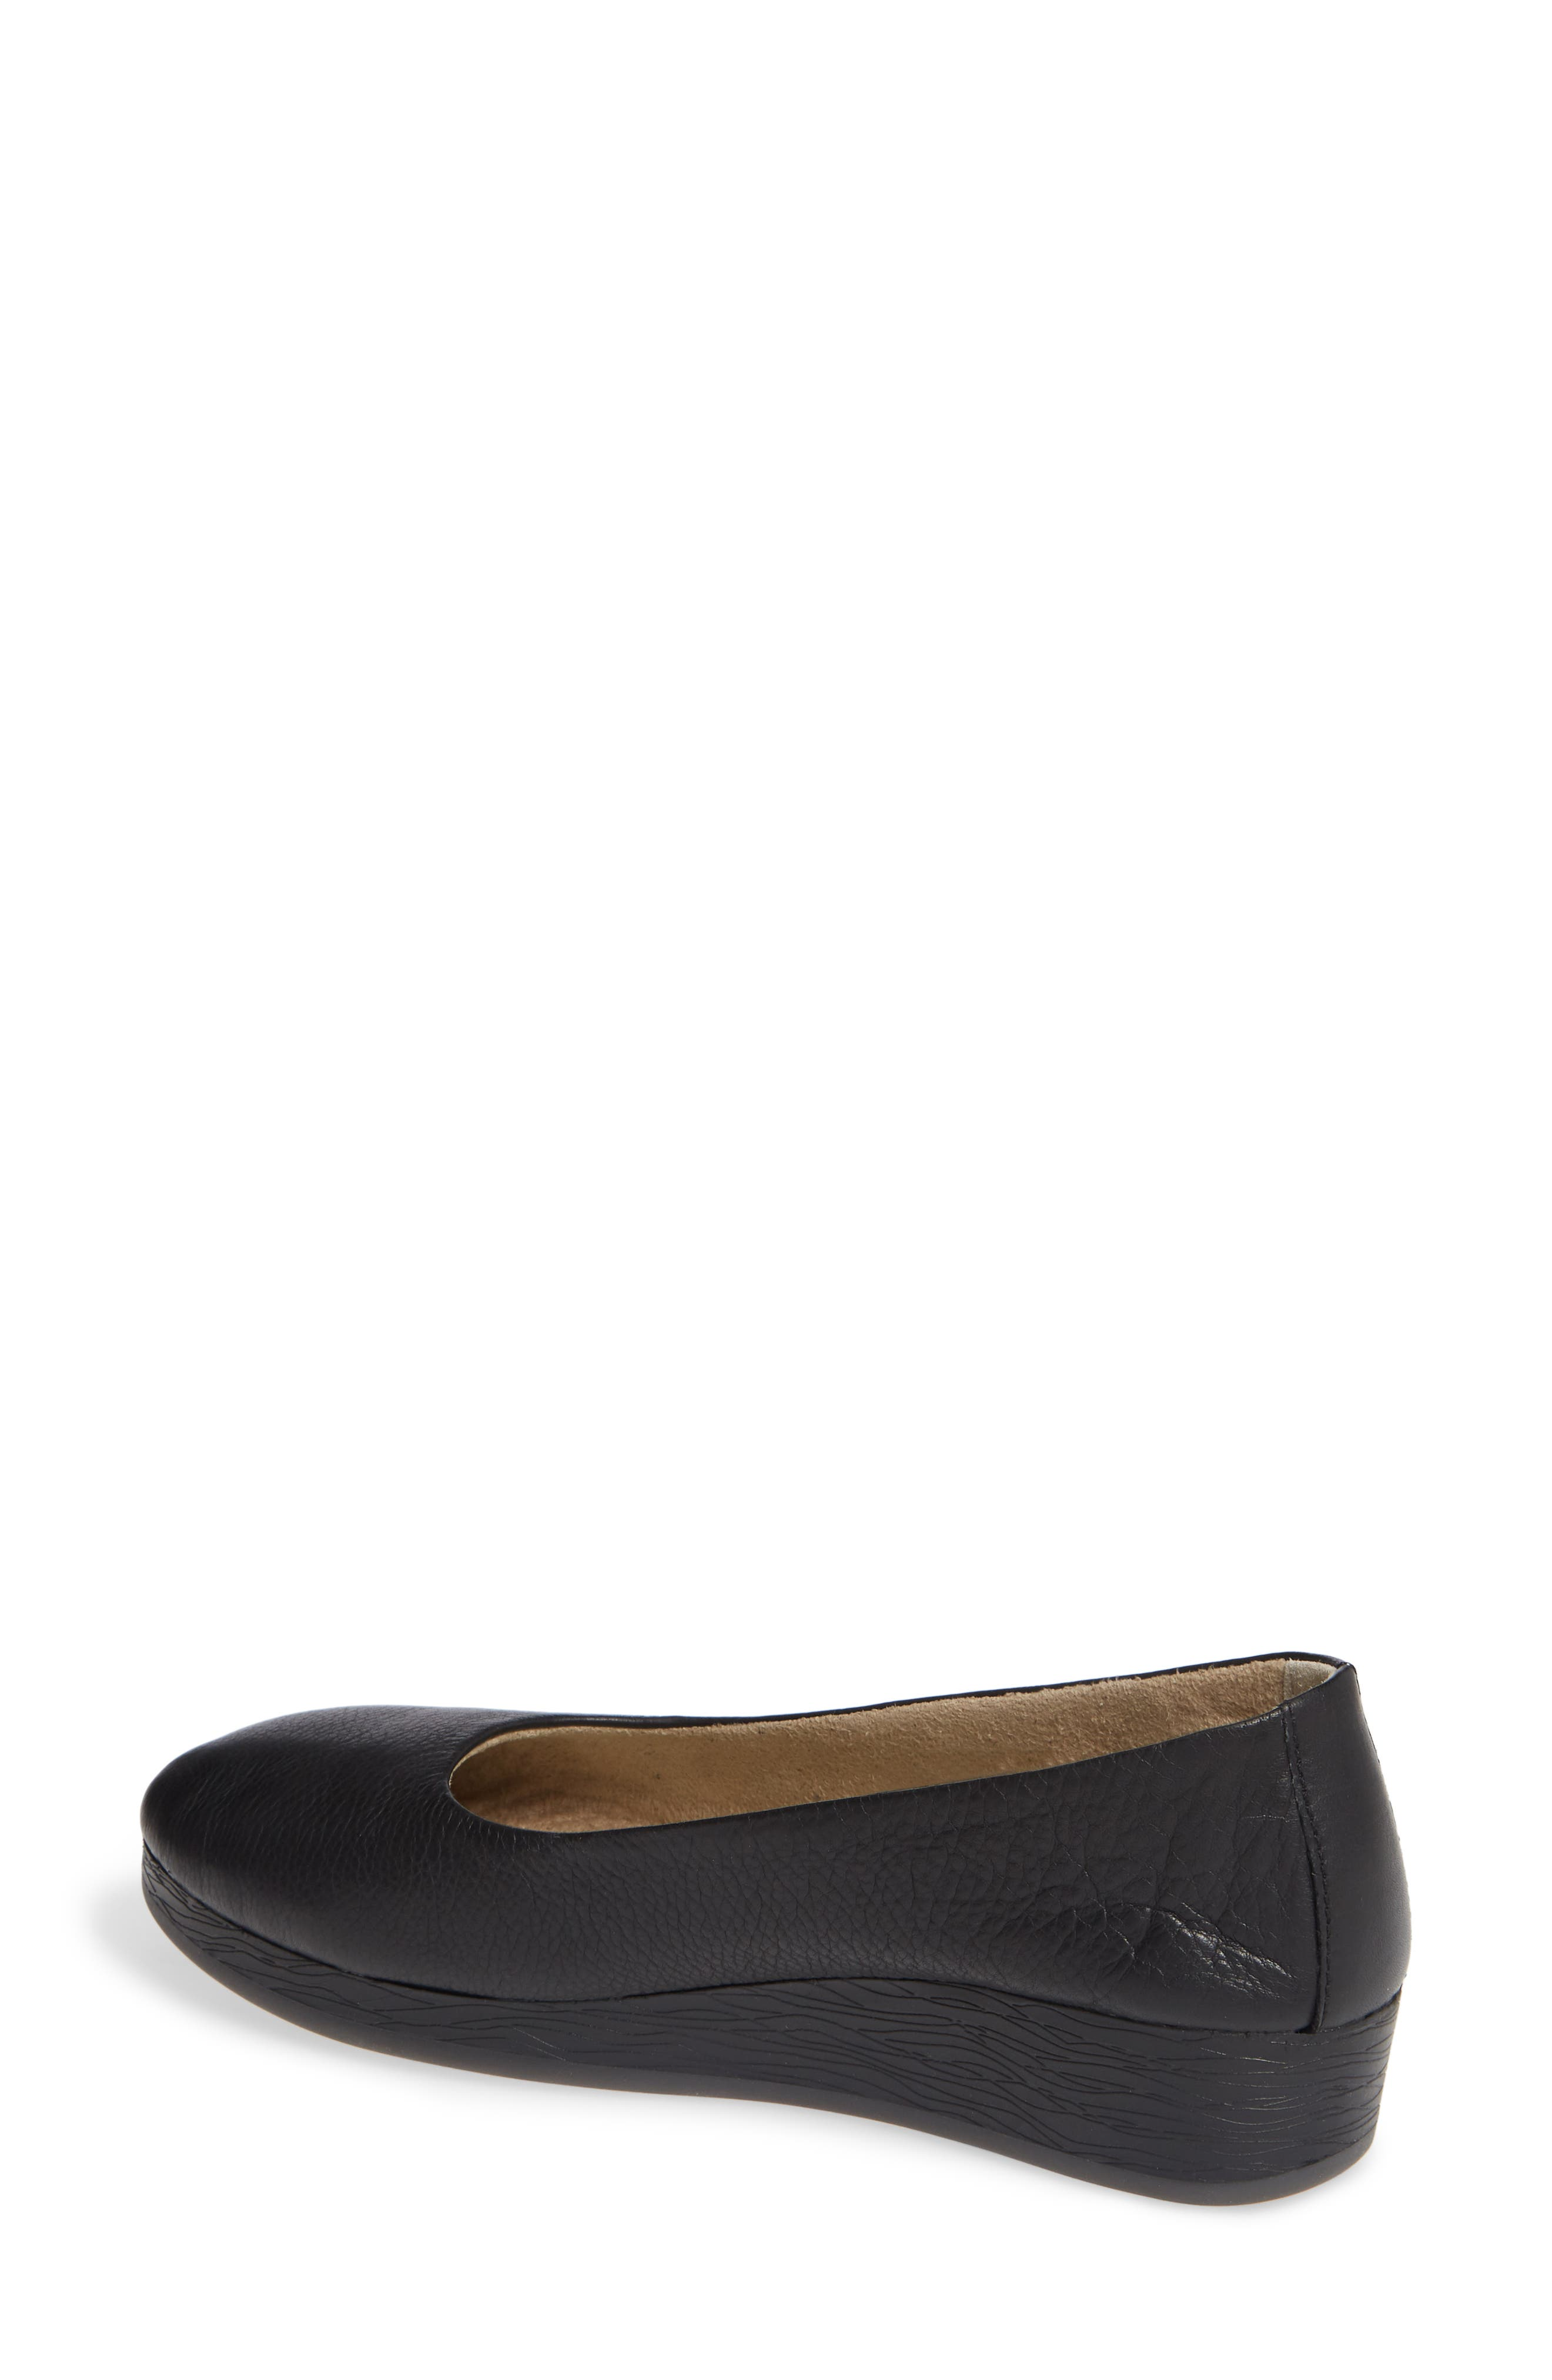 SOFTINOS BY FLY LONDON, Asa Soft Flat, Alternate thumbnail 2, color, BLACK SMOOTH LEATHER